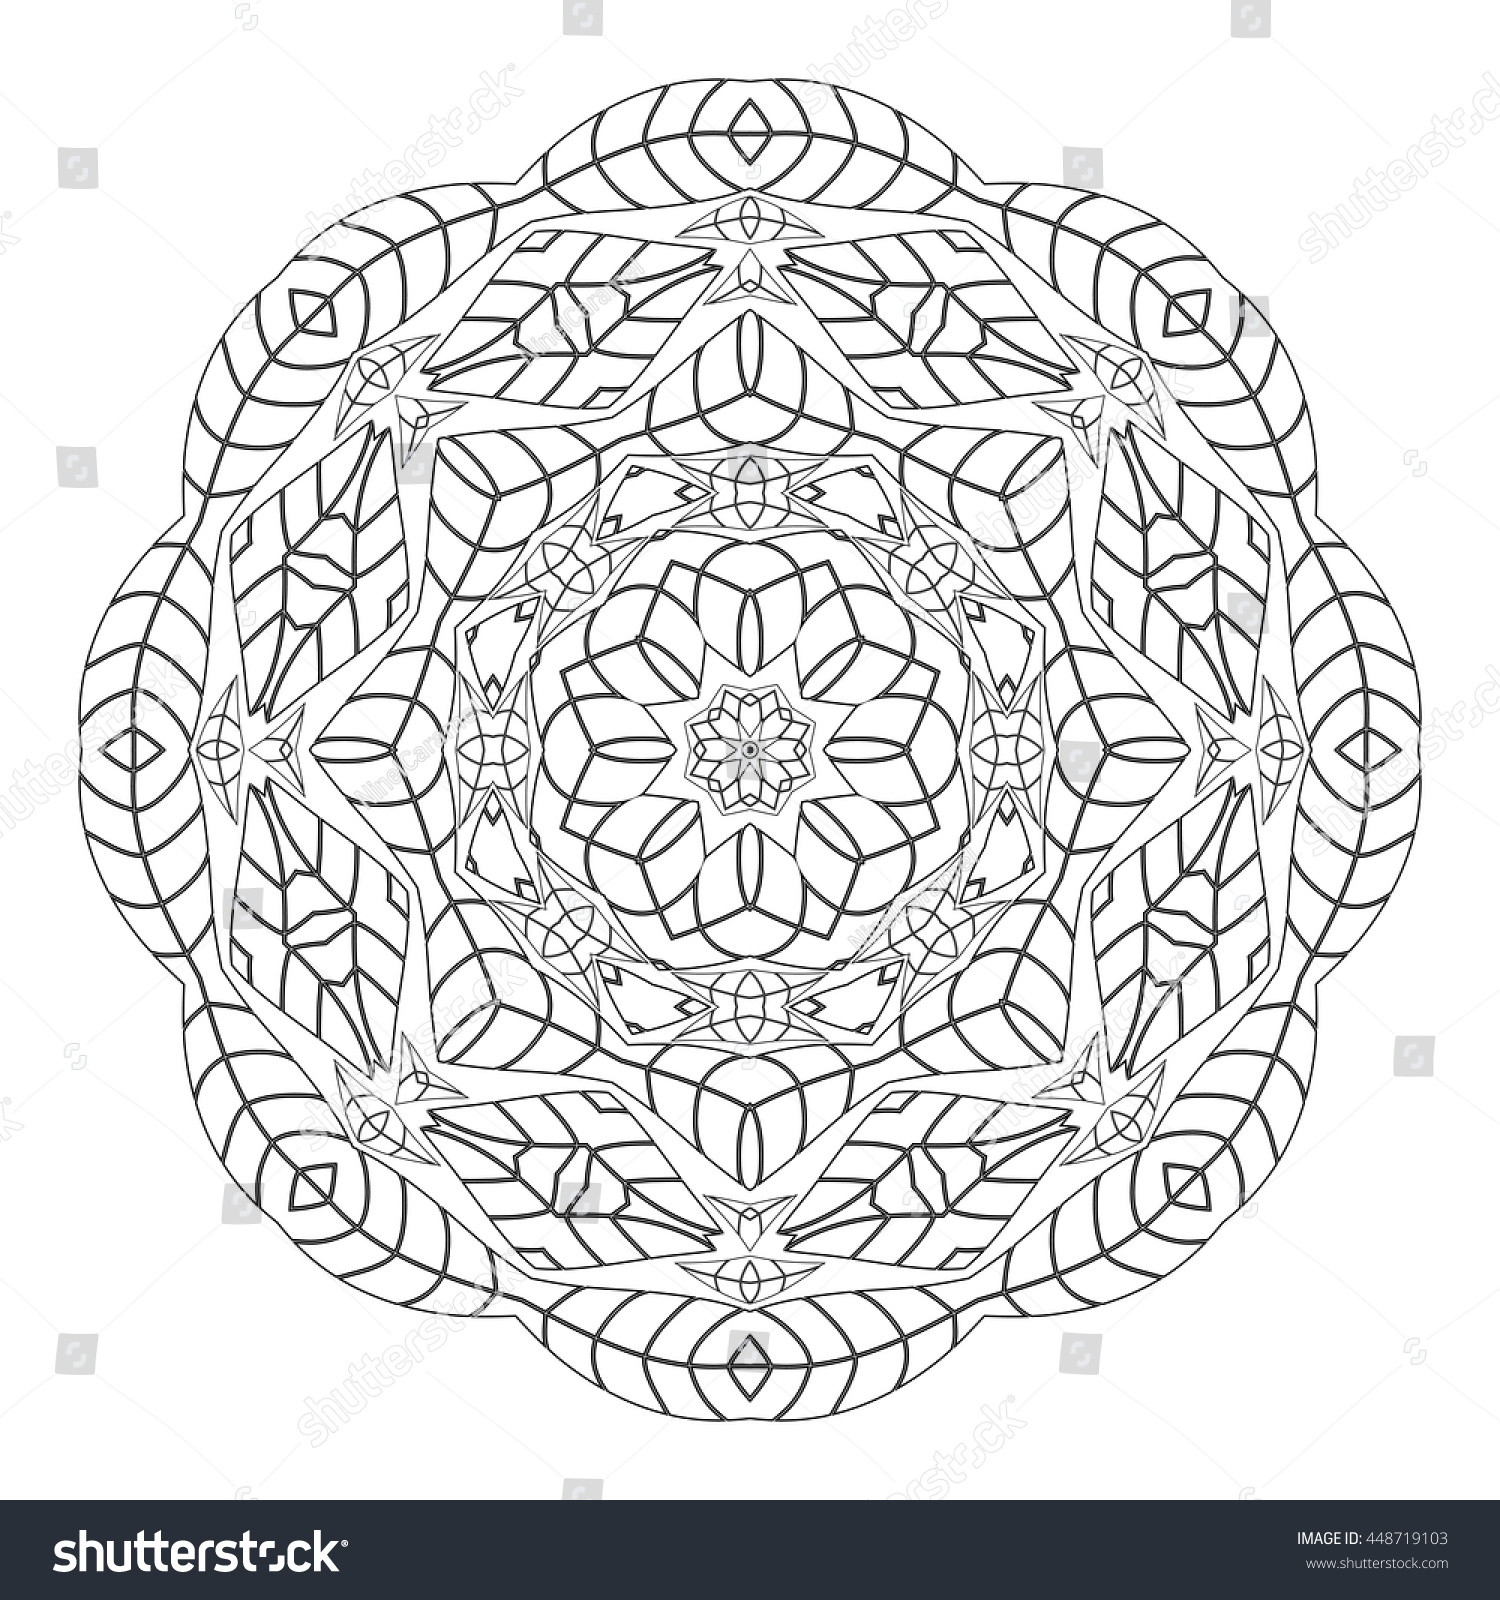 coloring page monochrome circular oriental pattern coloring book ethnicity round ornament preview save to a lightbox